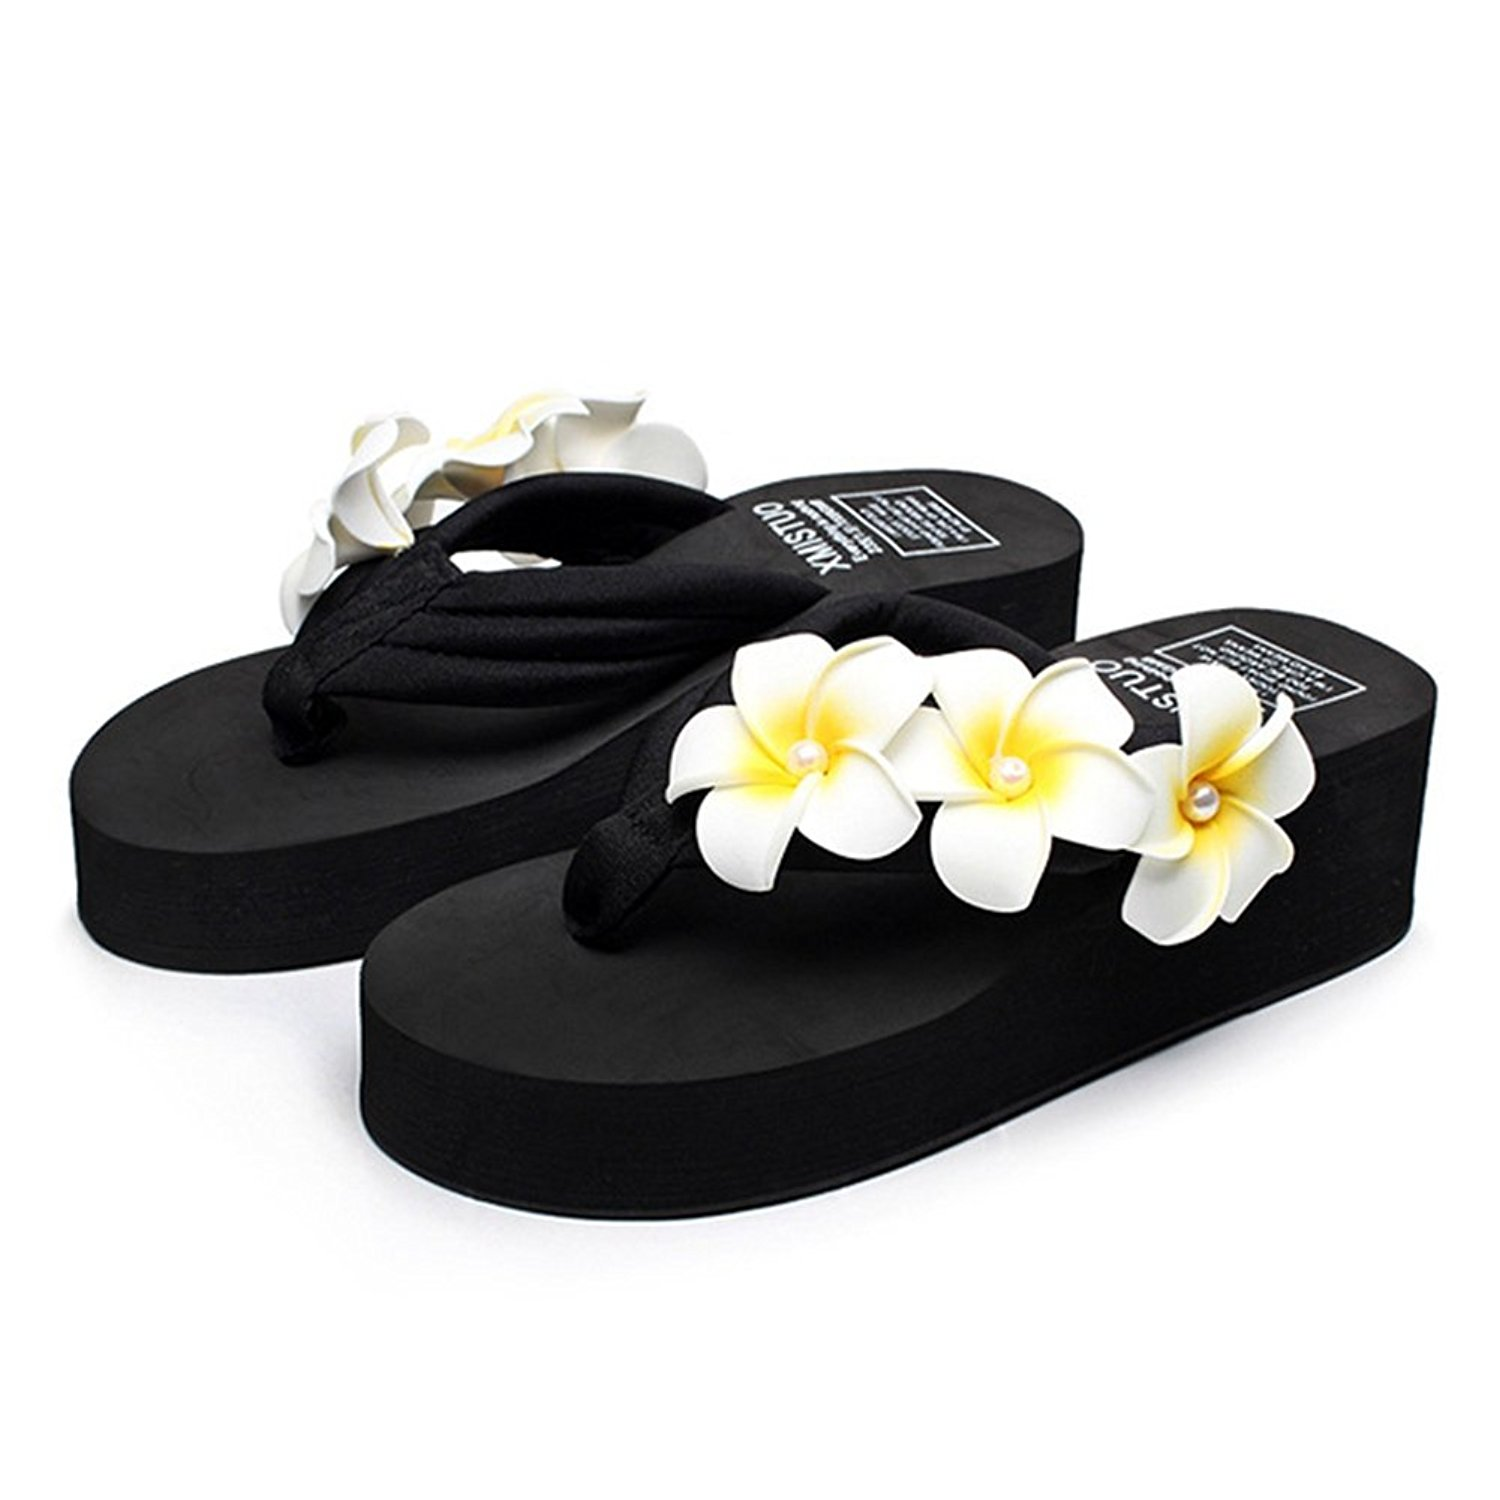 3fea328ef5f Get Quotations · AVENBER Womens Flip Flop Mid Heel Sandals Plumeria Beach  Thongs Anti Skid Platform Slippers